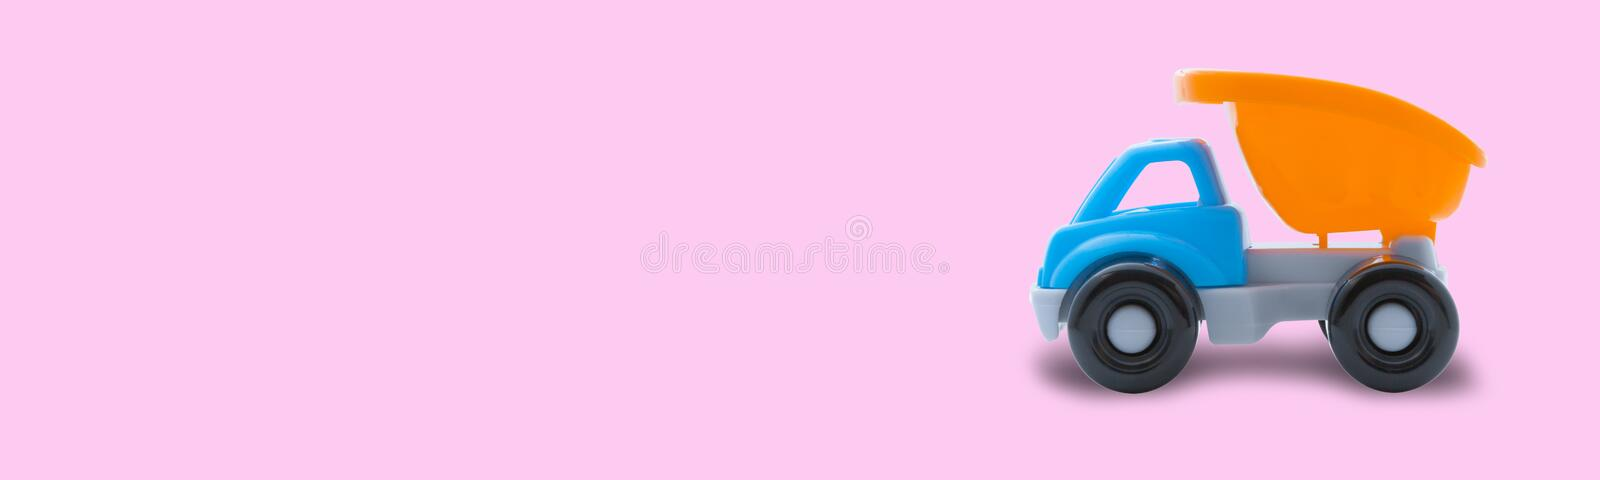 Toy truck on a pink background, space for text, concept of construction work or childish play royalty free stock photography